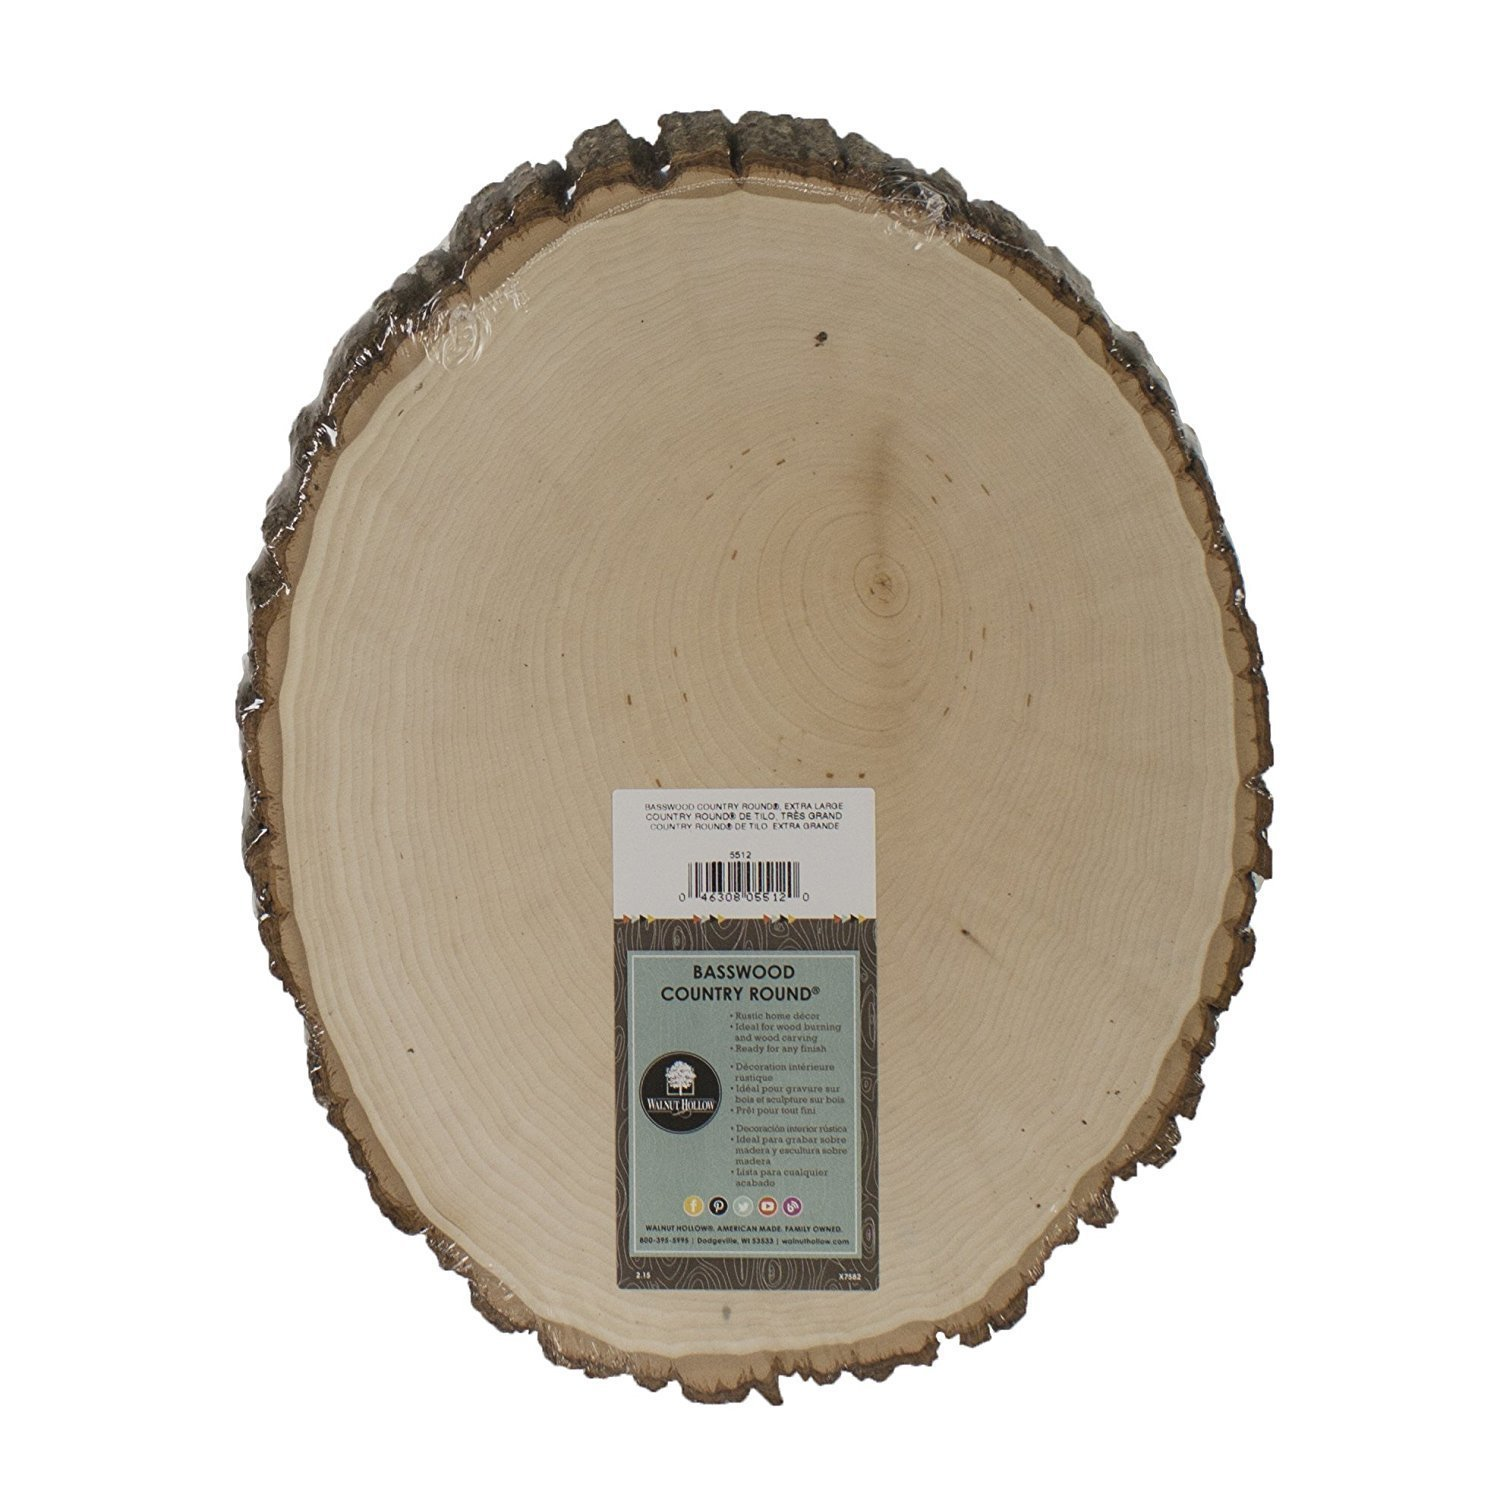 """Extra Large Basswood Rustic Country Round - 11"""" to 13"""" Wide"""